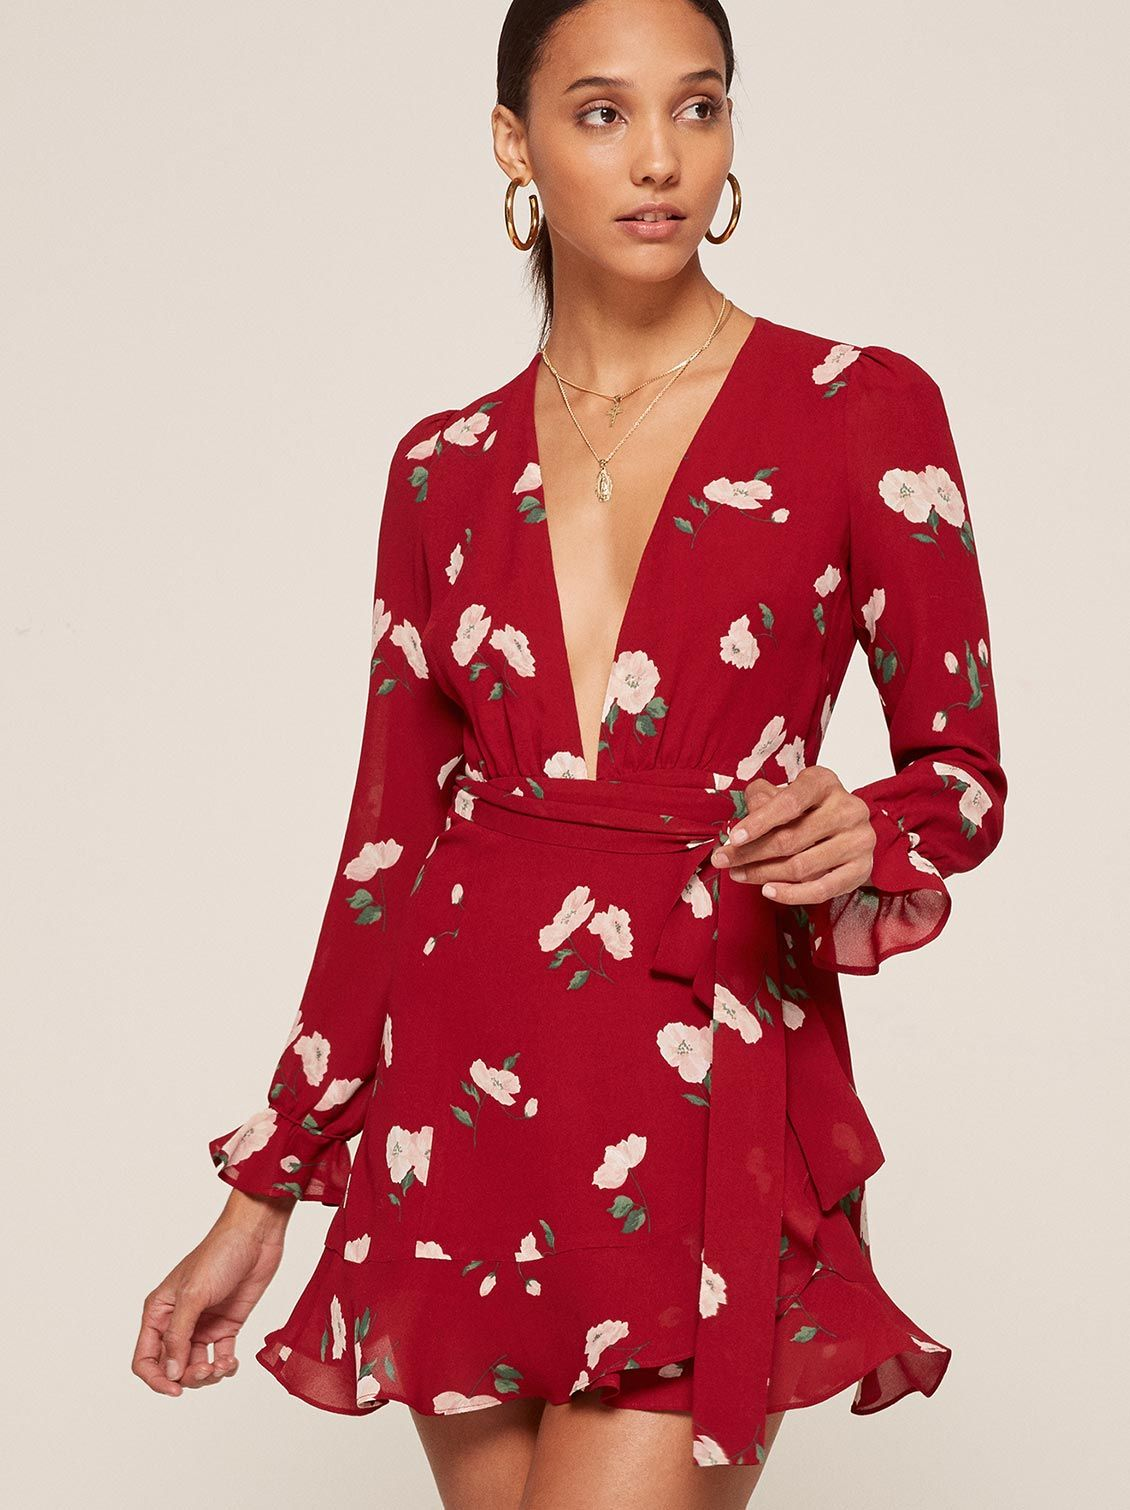 83495d53601 Whitby red floral deep v neck dress Reformation